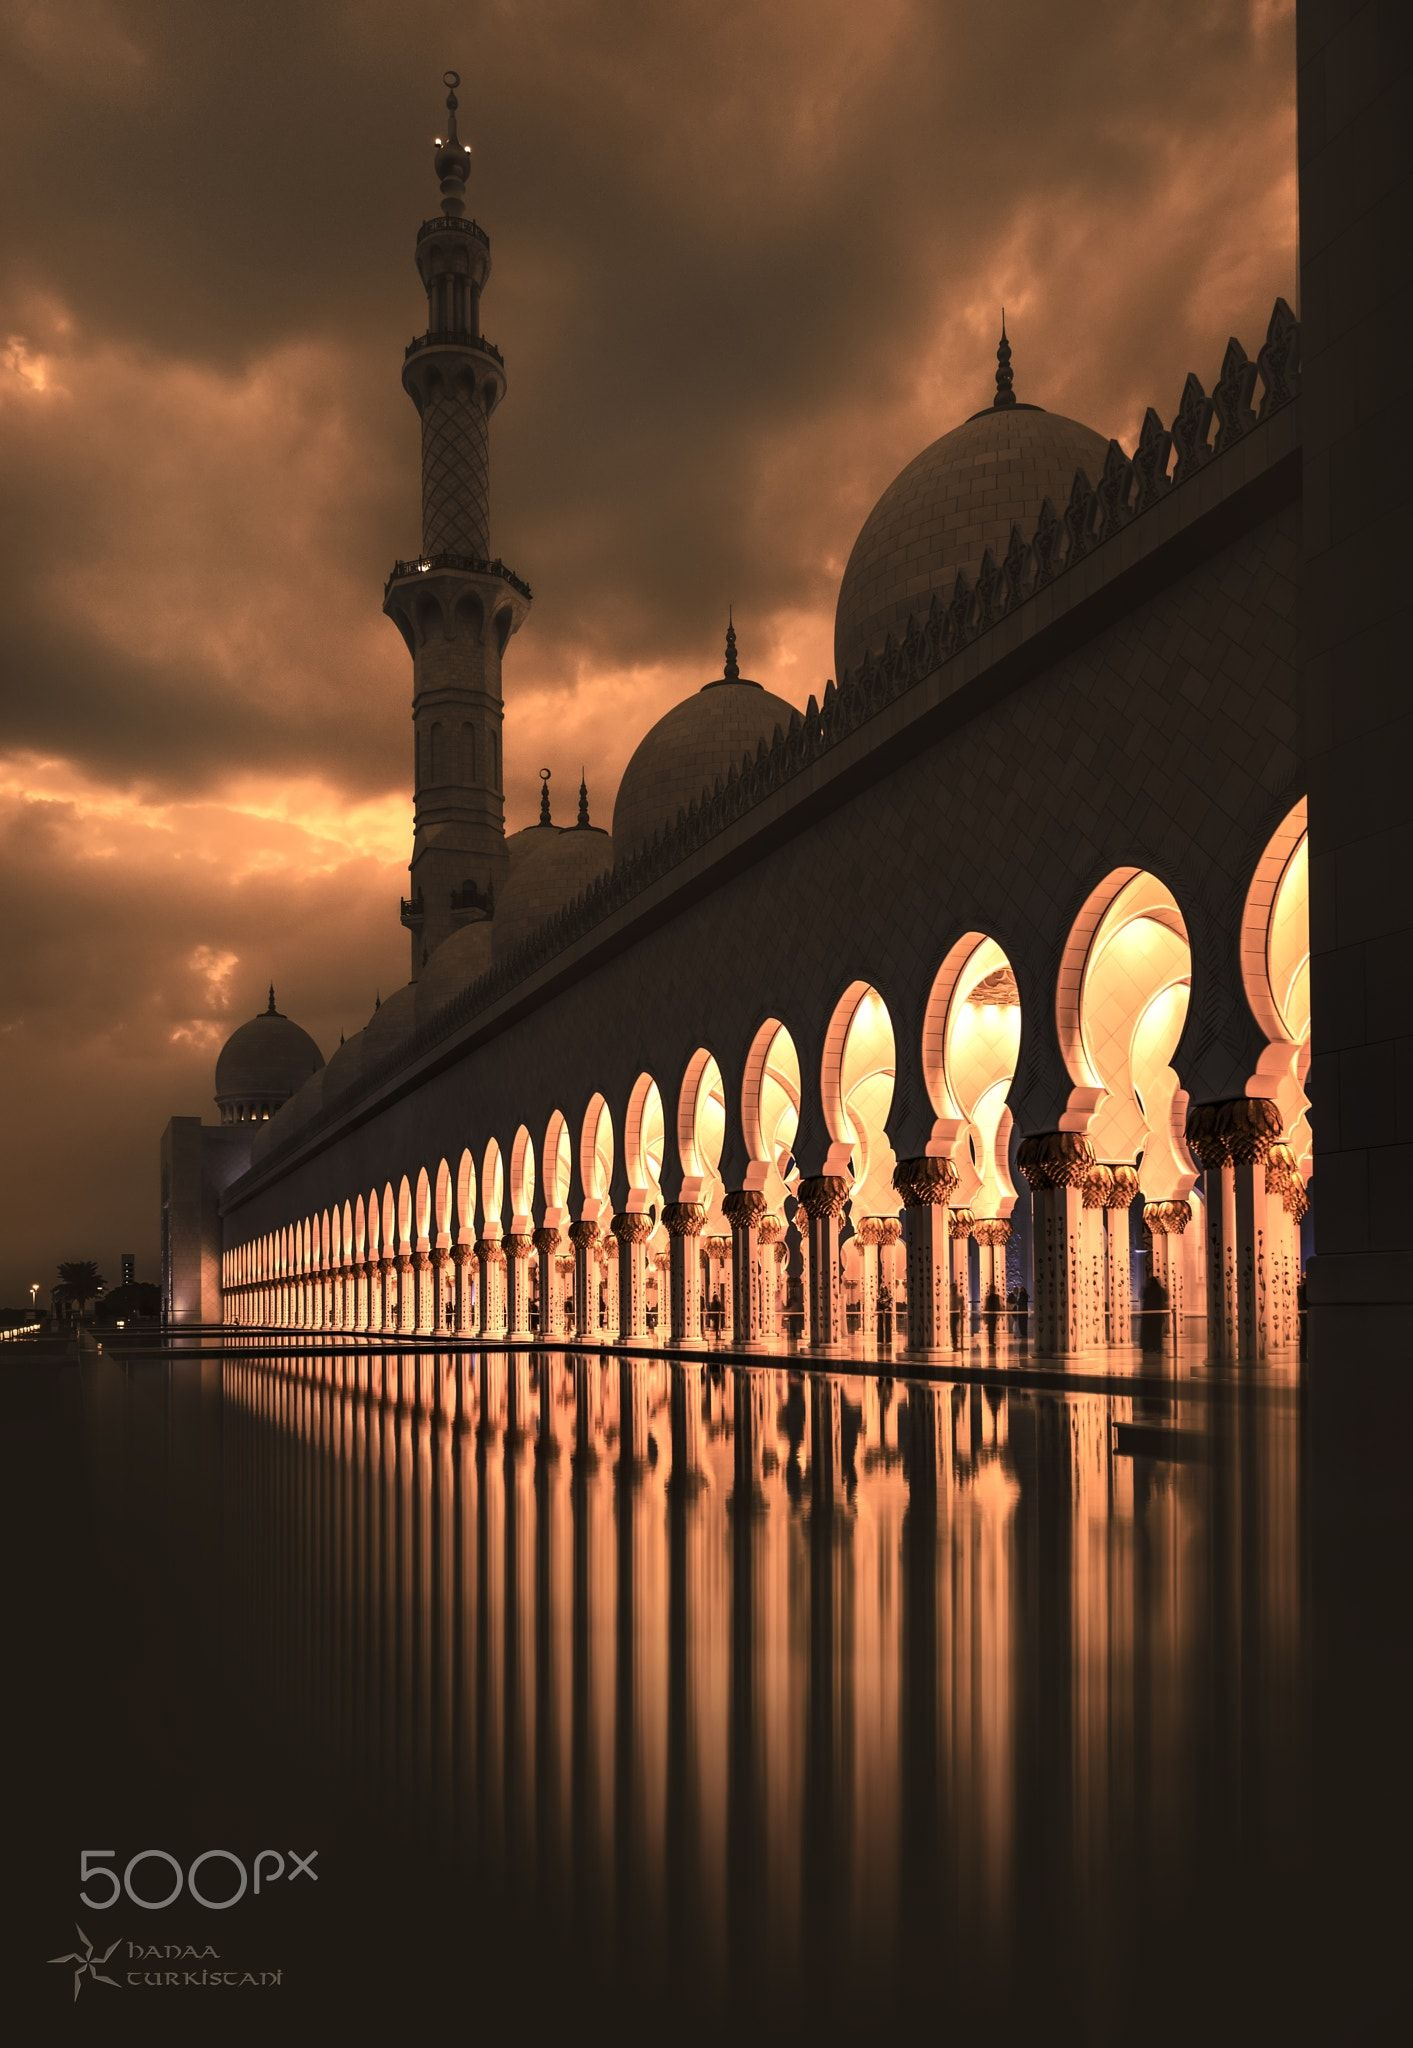 Bright Sight Sunlight The Most Precious Gold To Be Found On Earth Monochrome Gives Beautiful Sense To The P Islamic Architecture Grand Mosque Sights